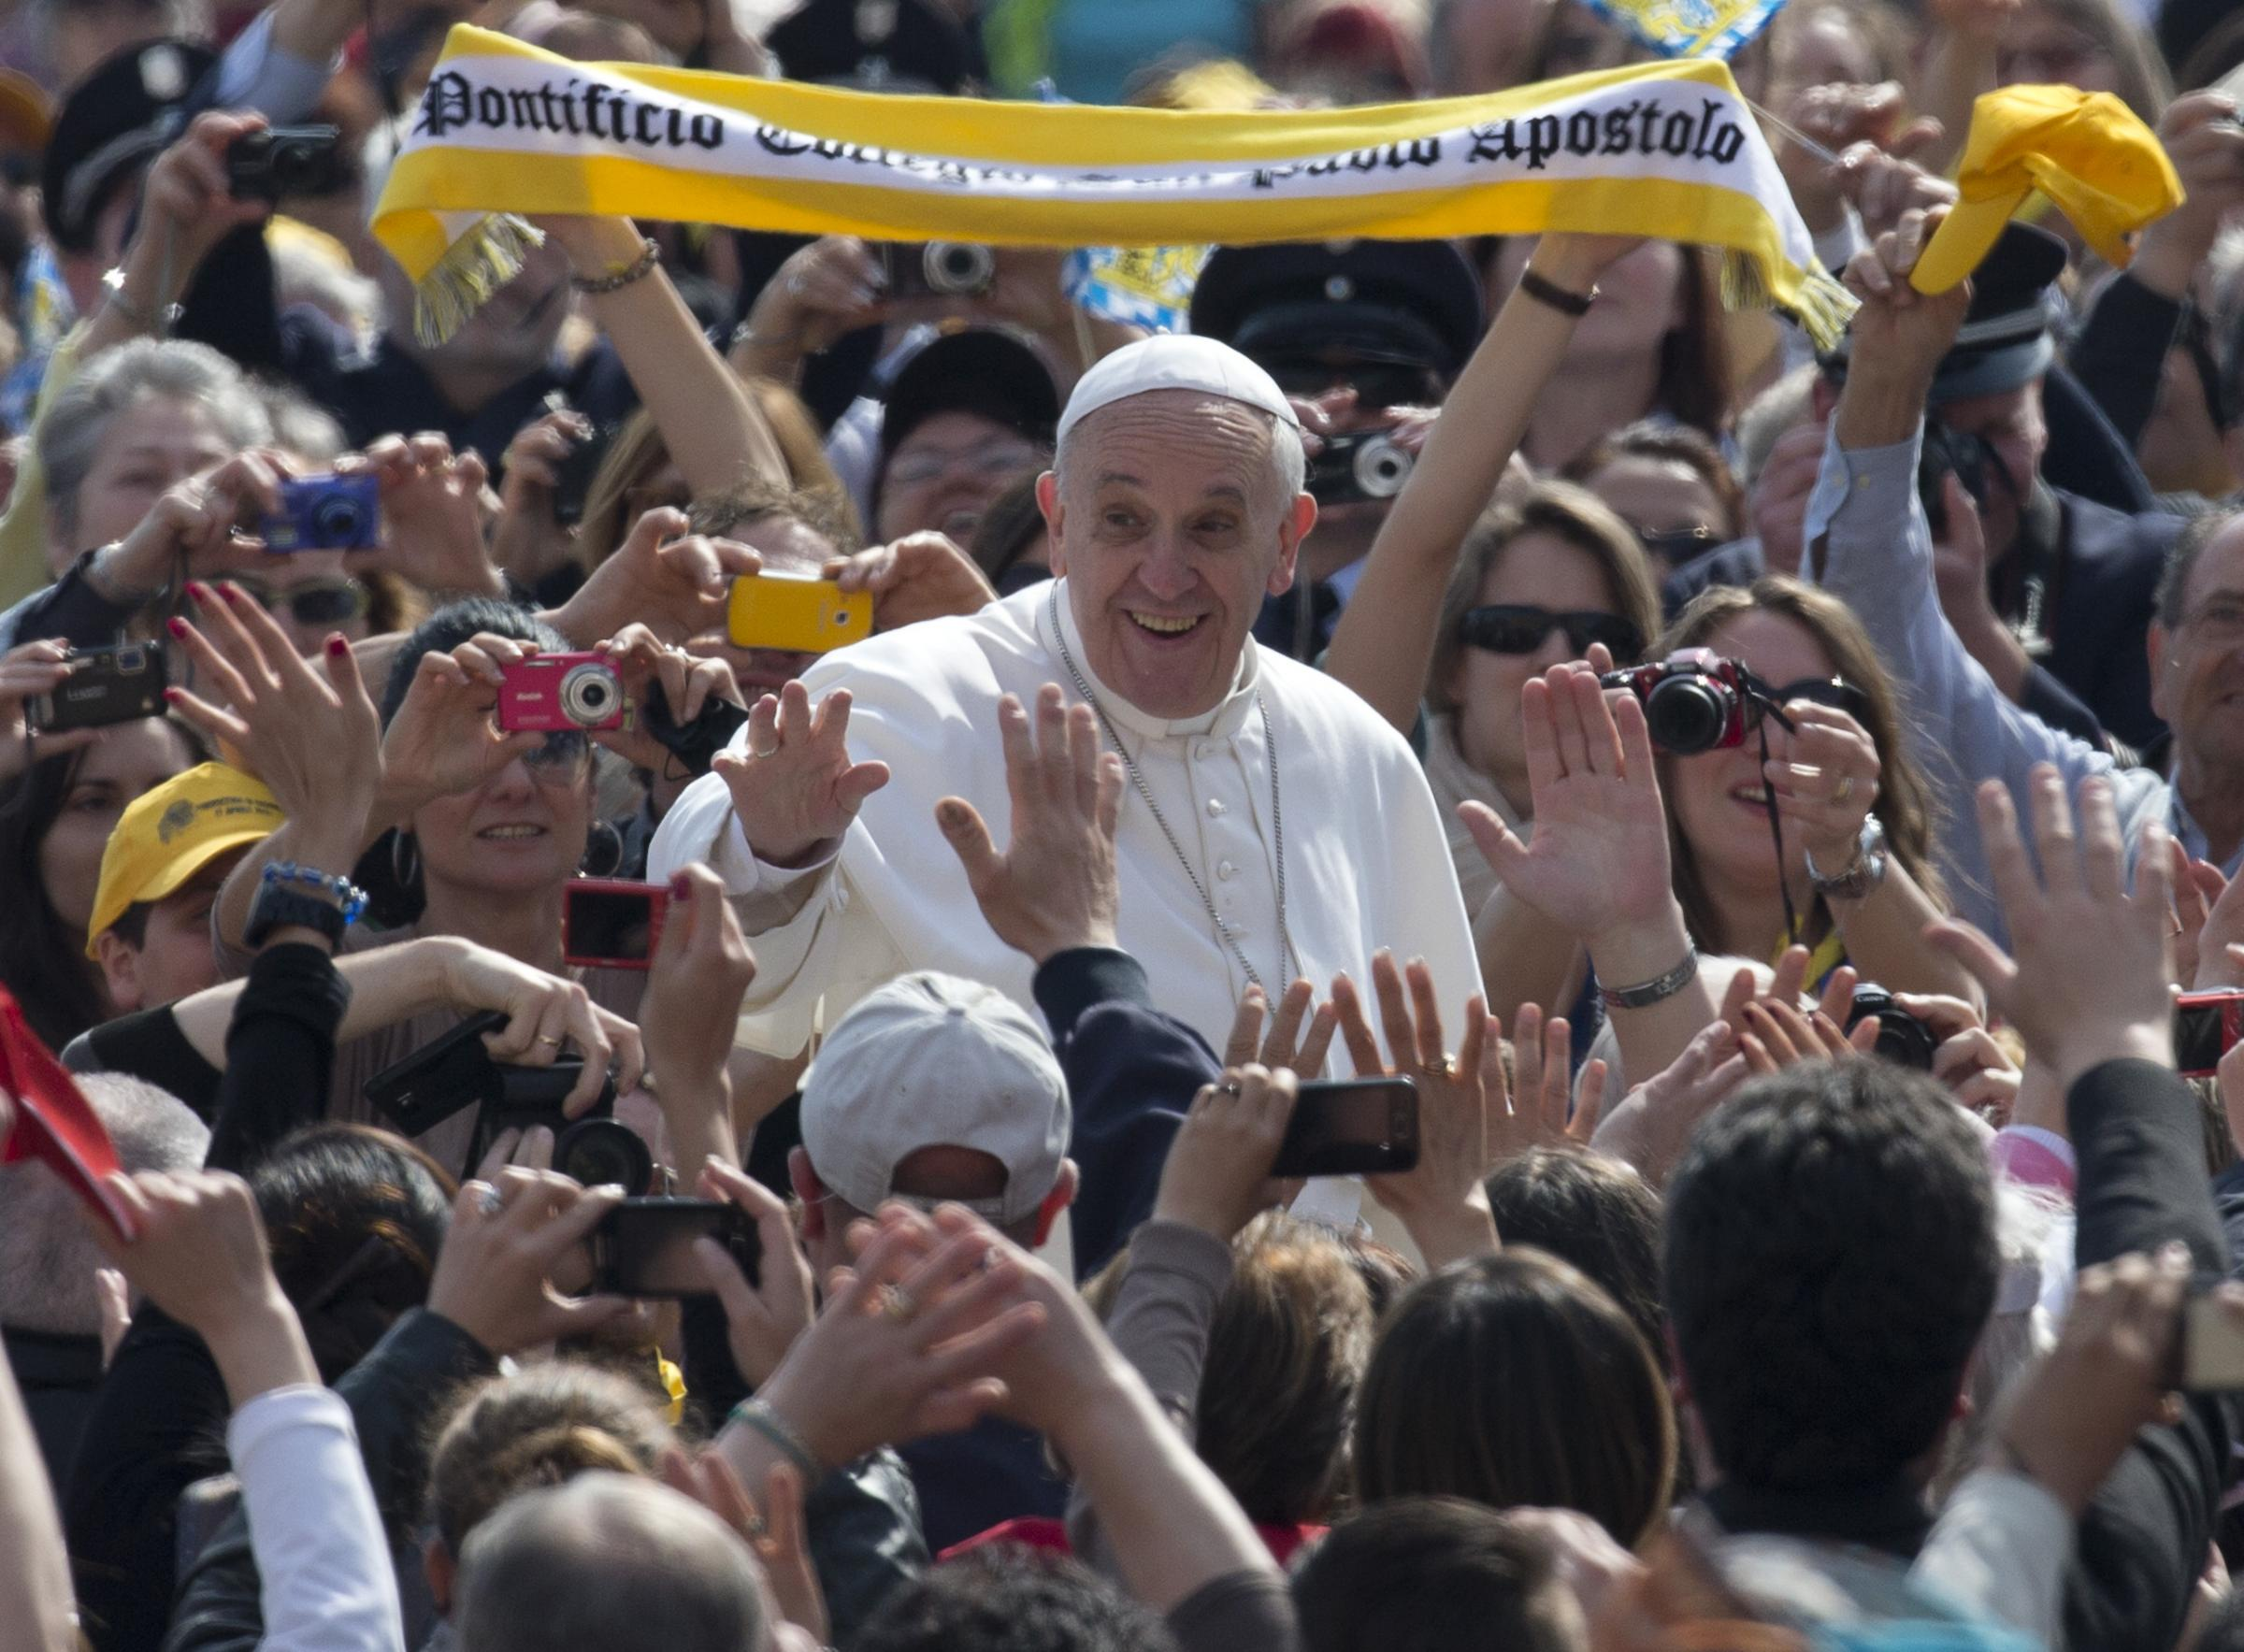 Pope Francis arrives for his weekly general audience in St. Peter square at the Vatican, Wednesday, April 17, 2013. (AP Photo/Alessandra Tarantino)